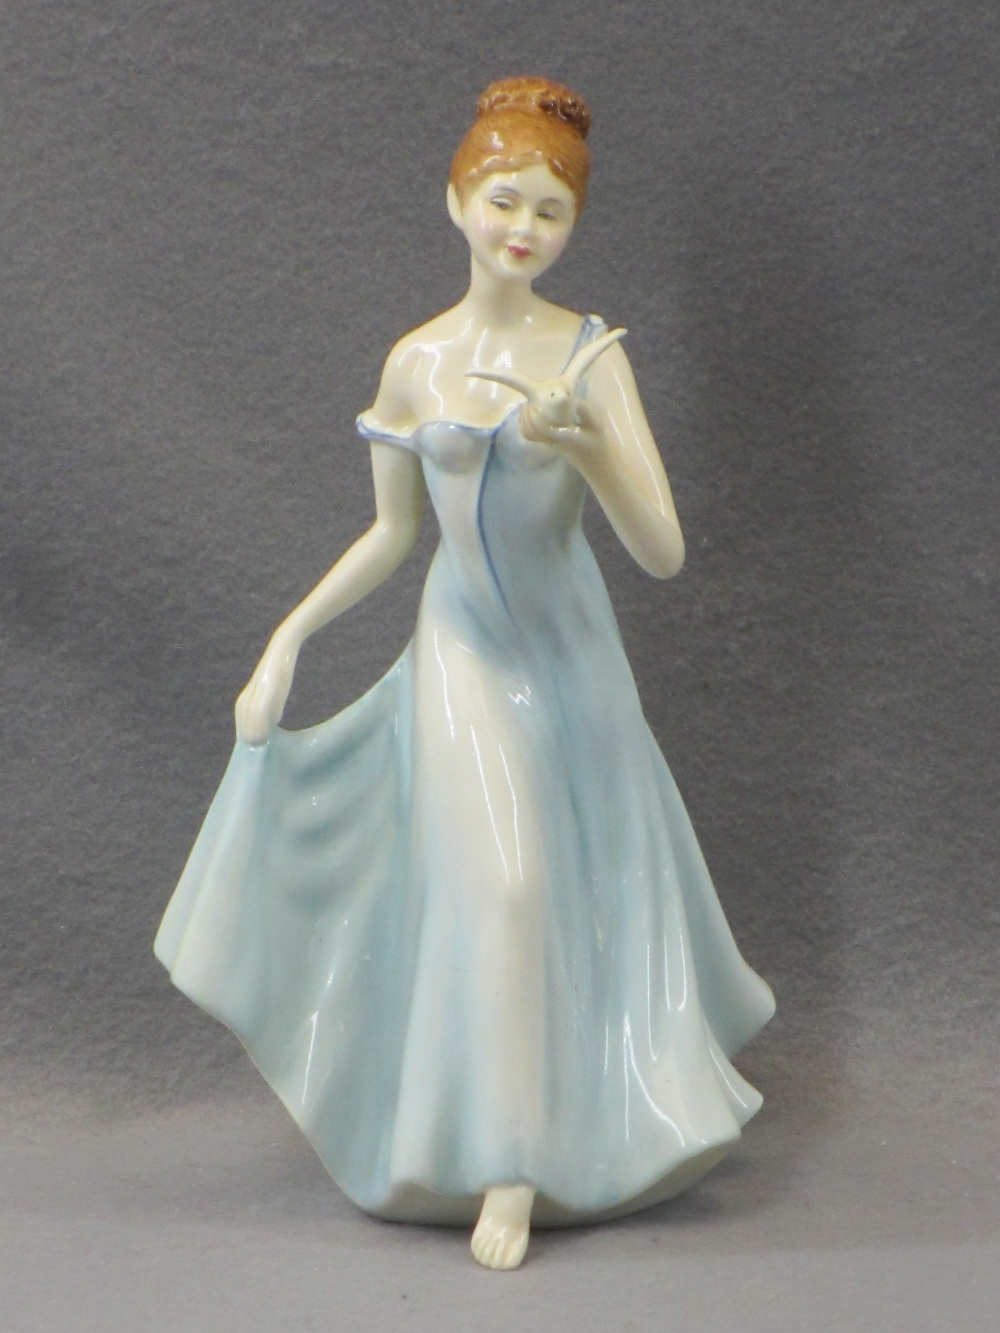 PORCELAIN & COMPOSITION CABINET FIGURINES, A COLLECTION including a Sitzendorf group of young man - Image 5 of 7